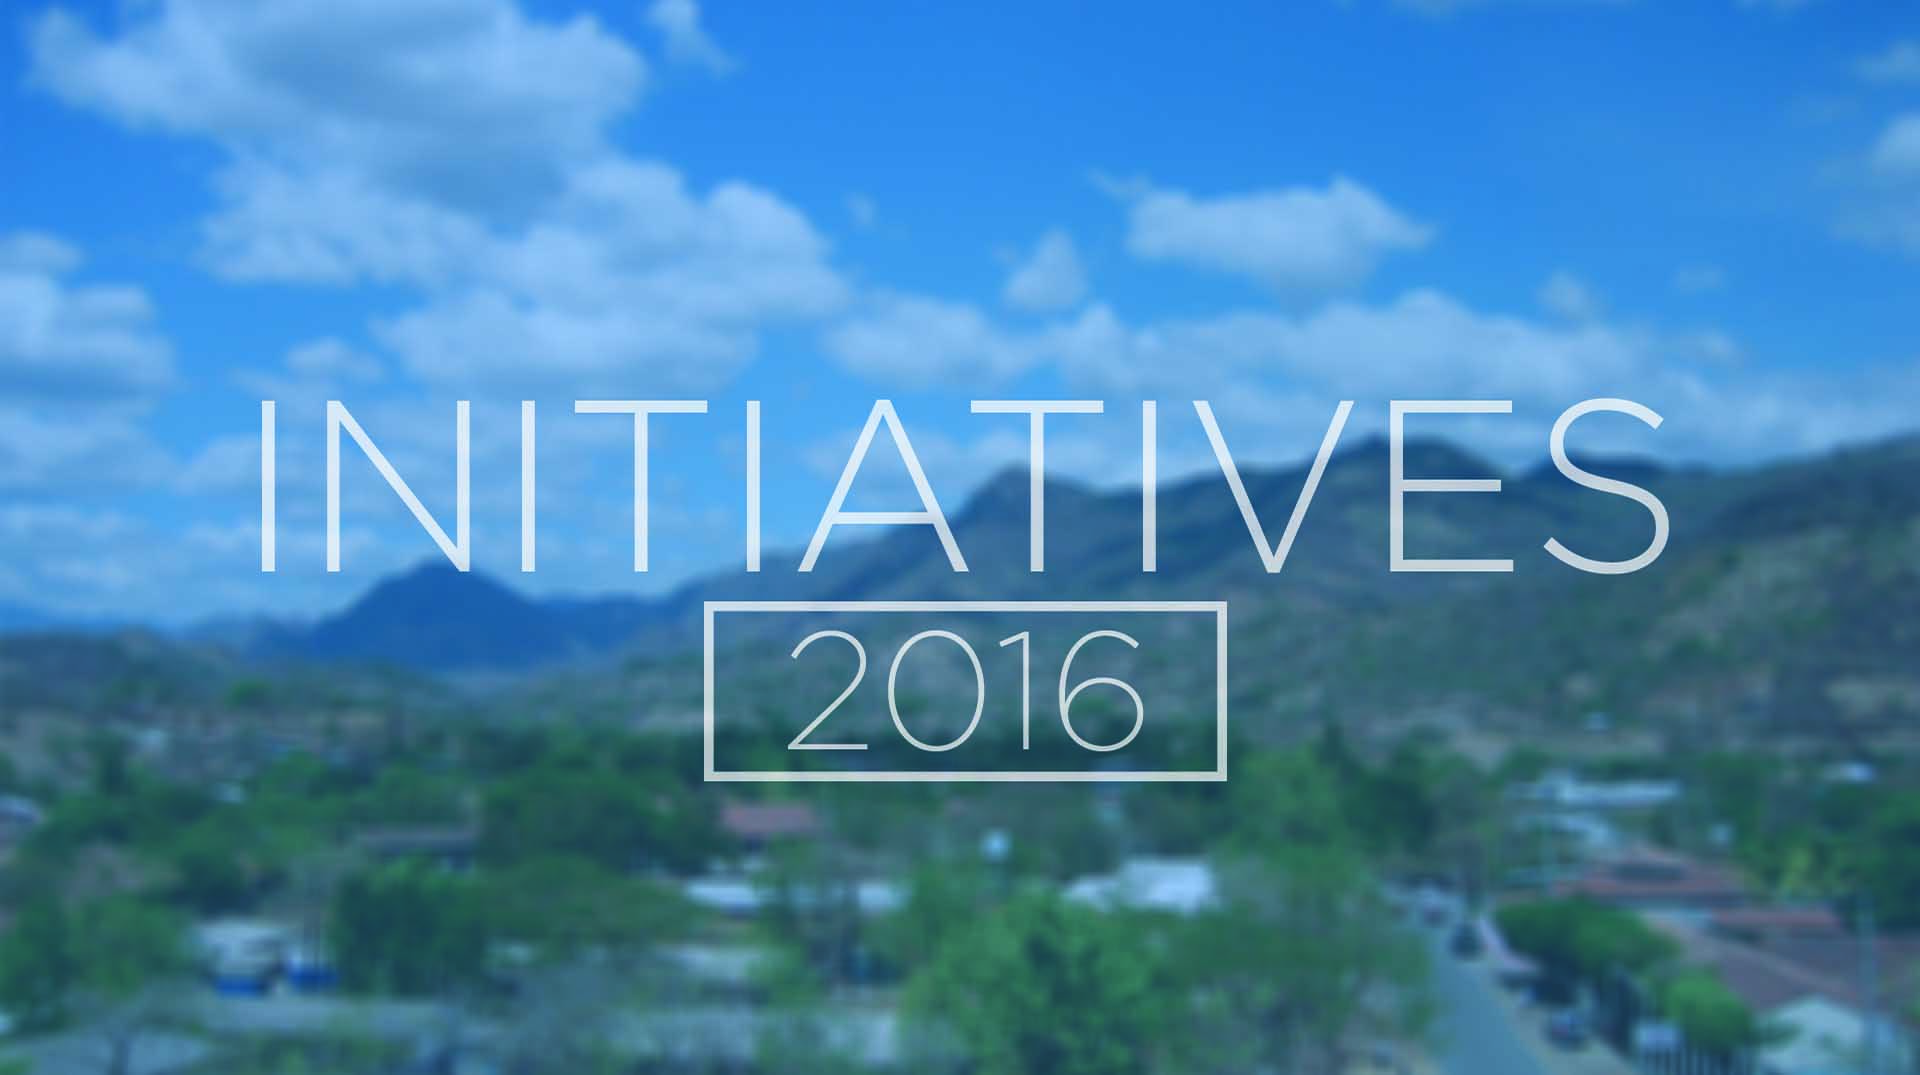 2015 GLOBAL INITIATIVES   Make a difference in Jesus' name this next year on one of our Short Term Trips. Make plans now to go on a faith adventure to make Jesus known. To learn more details and to sign-up go  HERE .  el Salvador - Compassion - June 18-24 - $2,400   $300 Deposit deadline extended to February 28